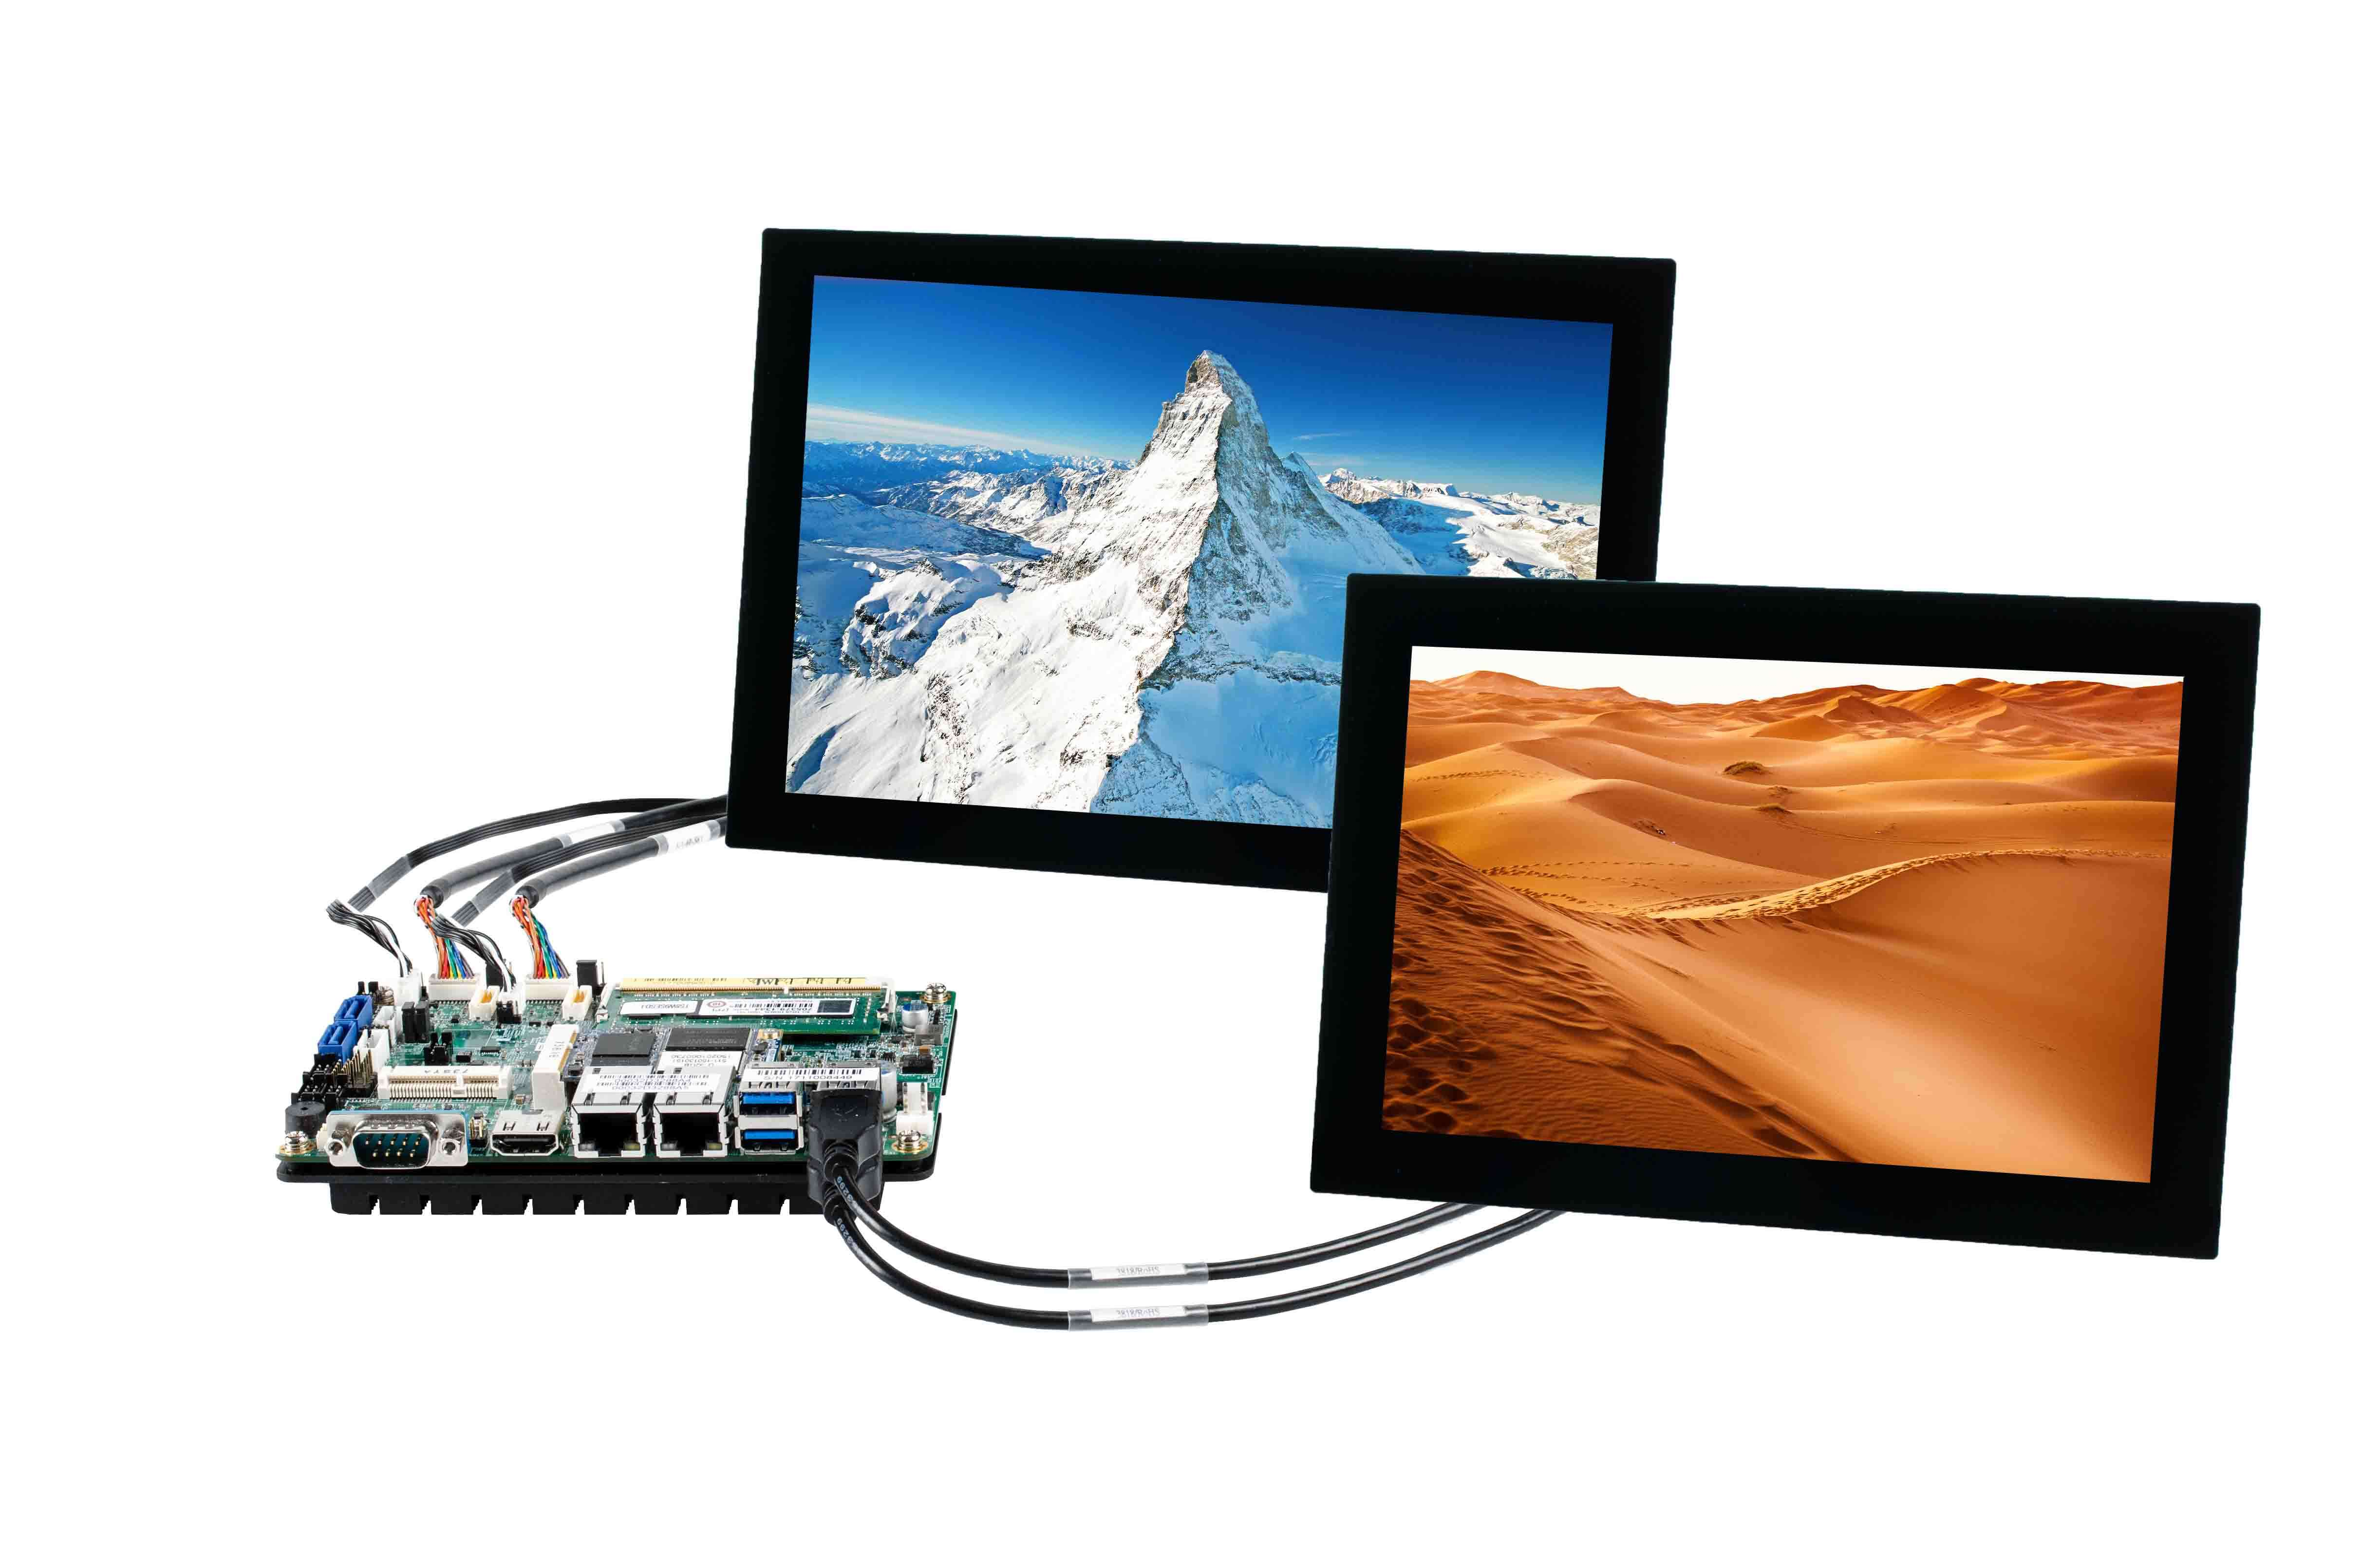 IB818 kit solution with SBC, displays, cables and further accessories